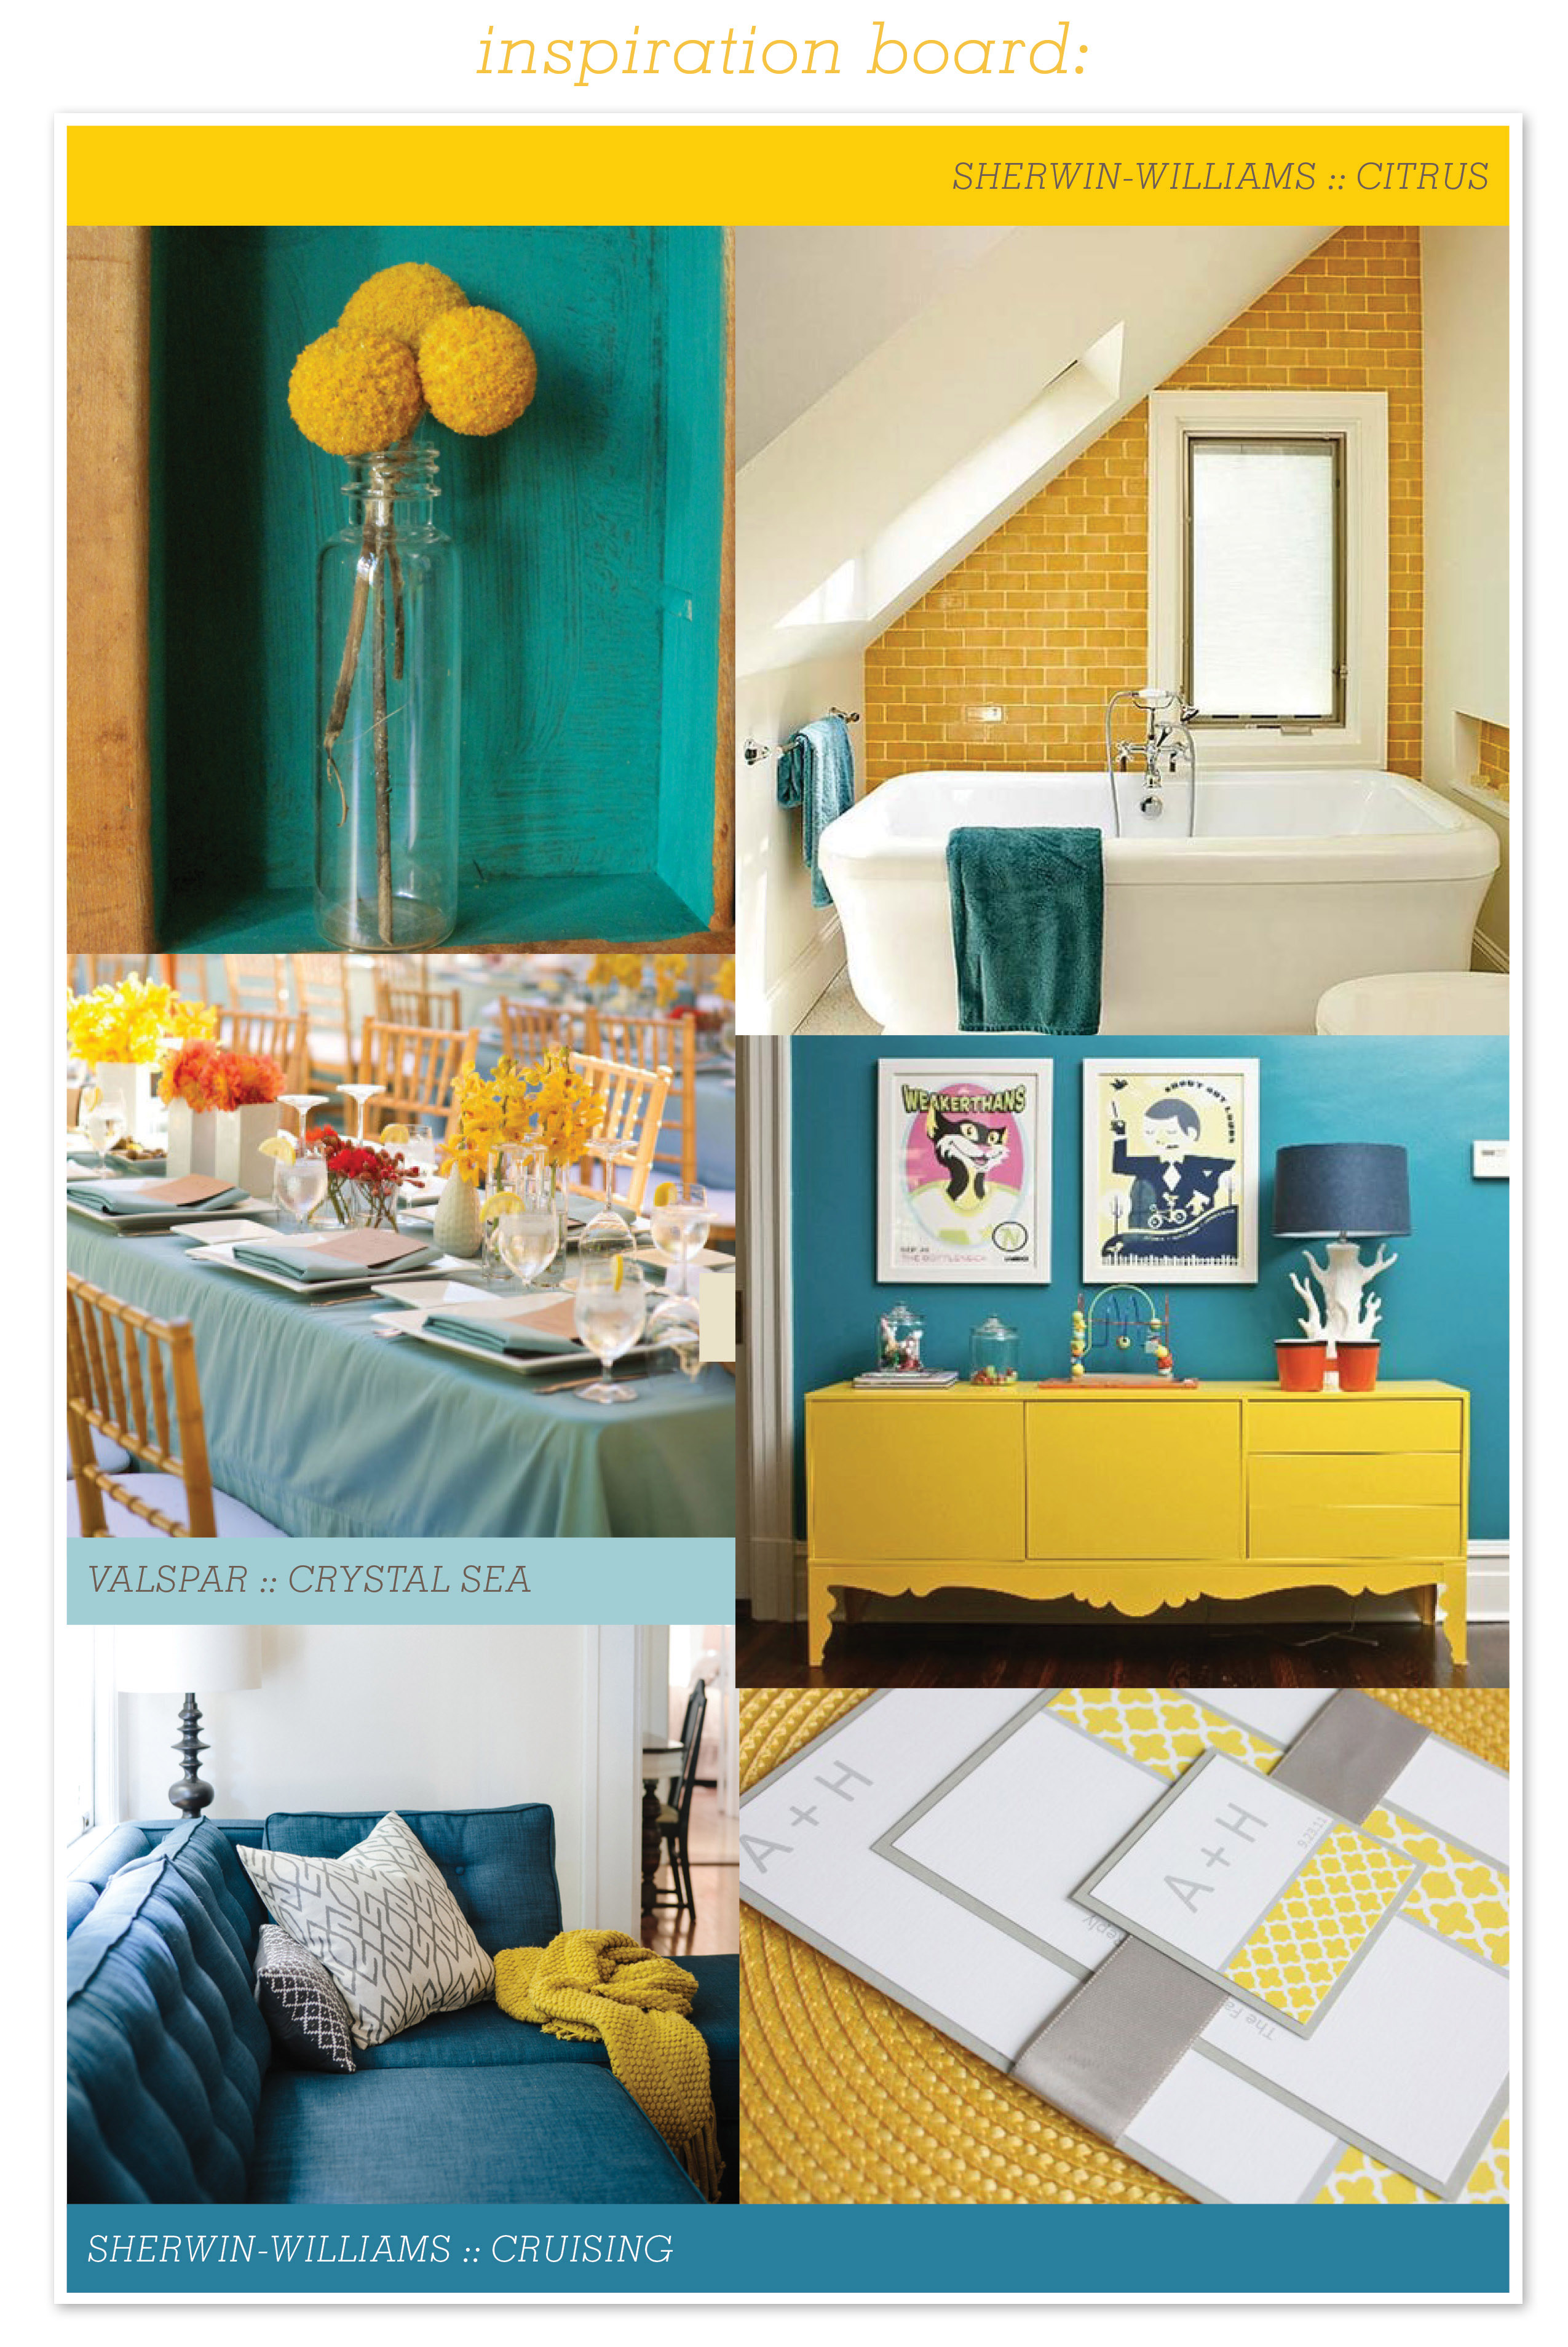 At Home in Arkansas blog | 25 August 2014 | Color Coordinated: Dining in Color